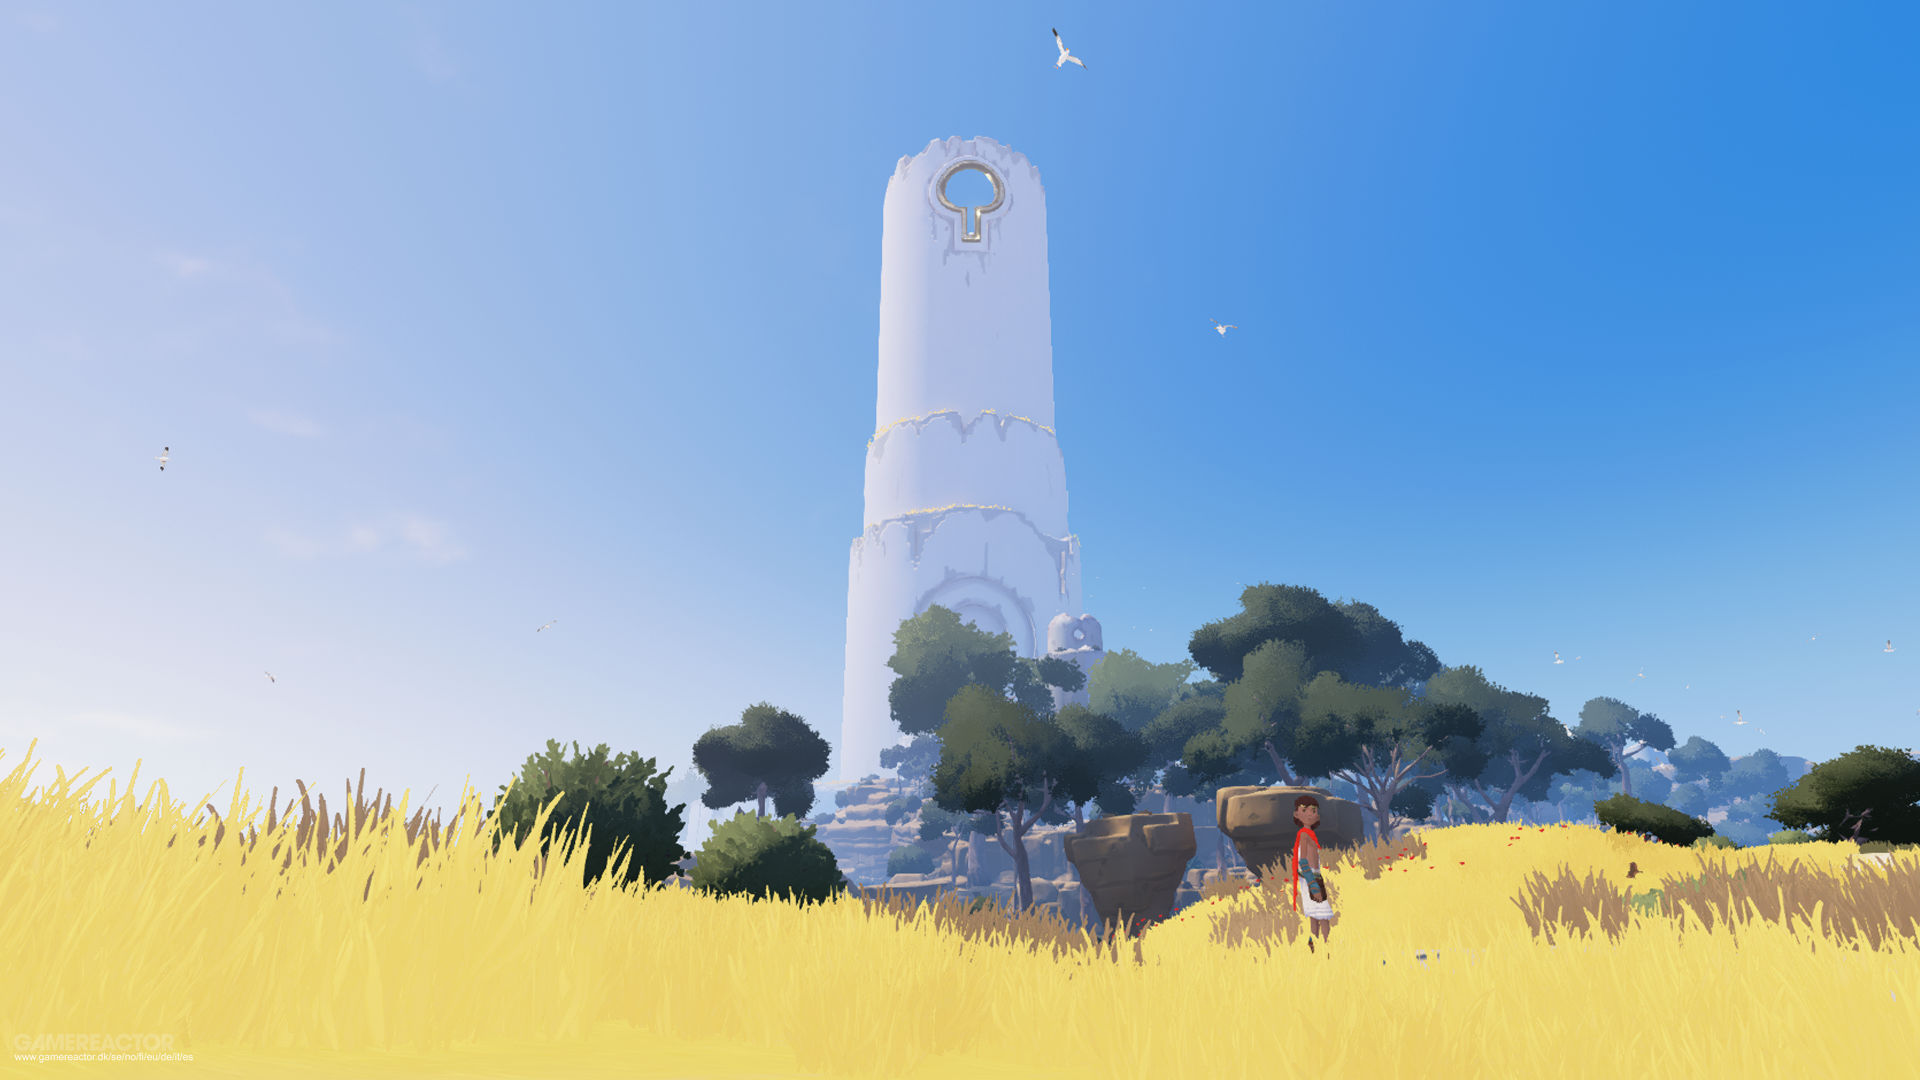 rime video game artwork